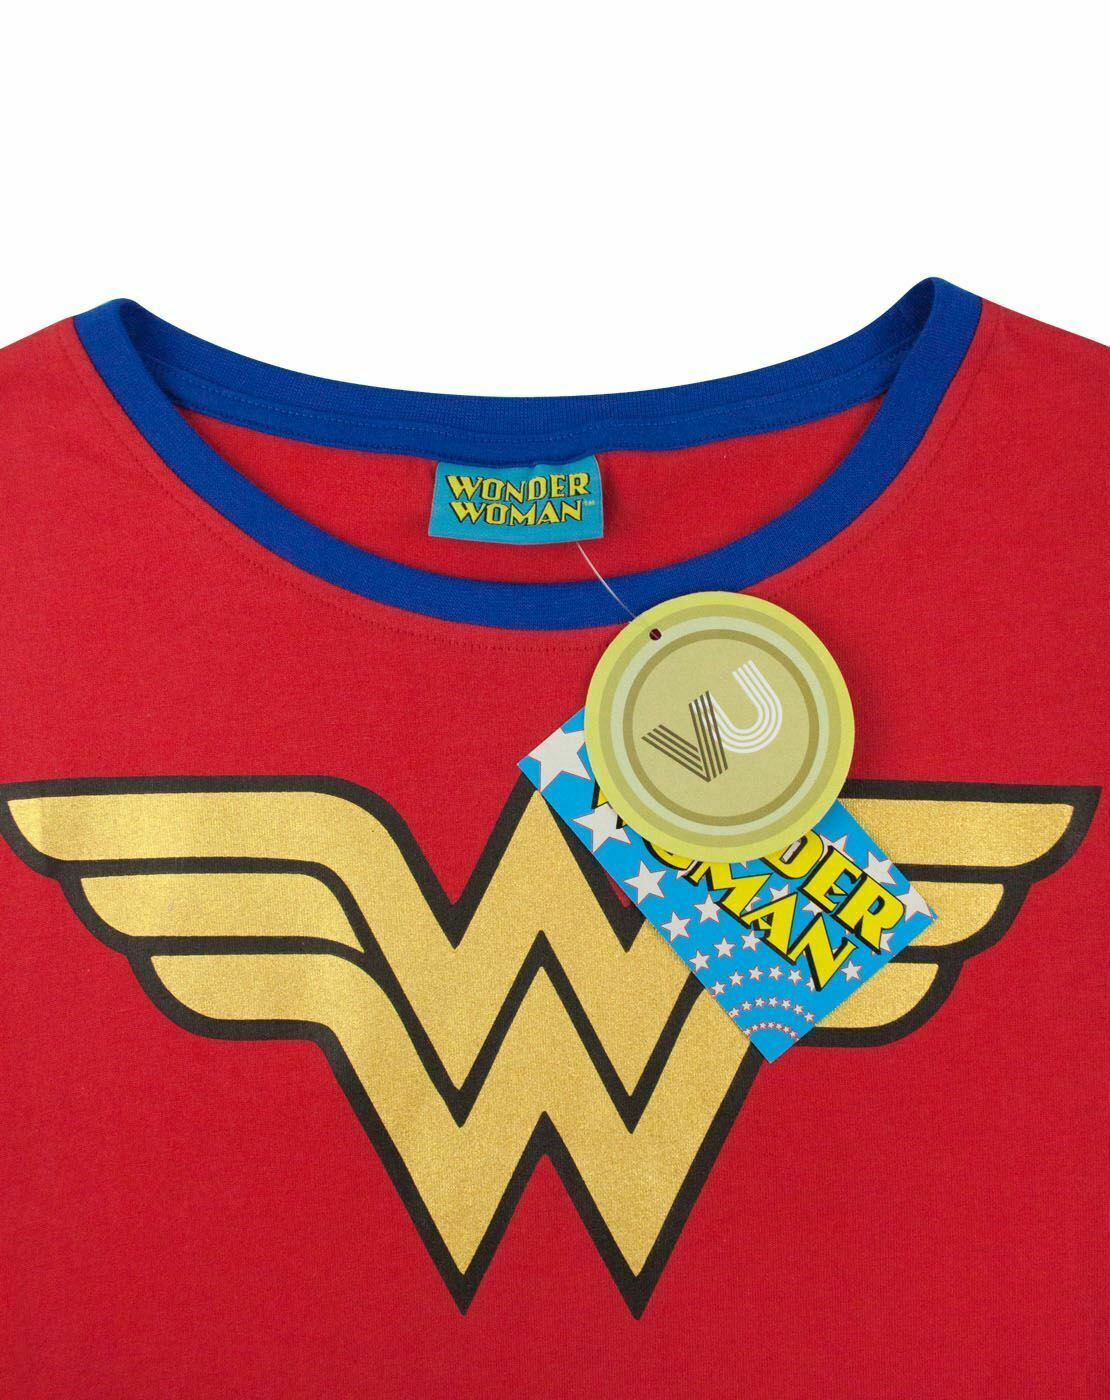 Wonder-Woman-DC-Comics-Metallic-Gold-Logo-Women-039-s-Red-Superhero-T-Shirt thumbnail 13